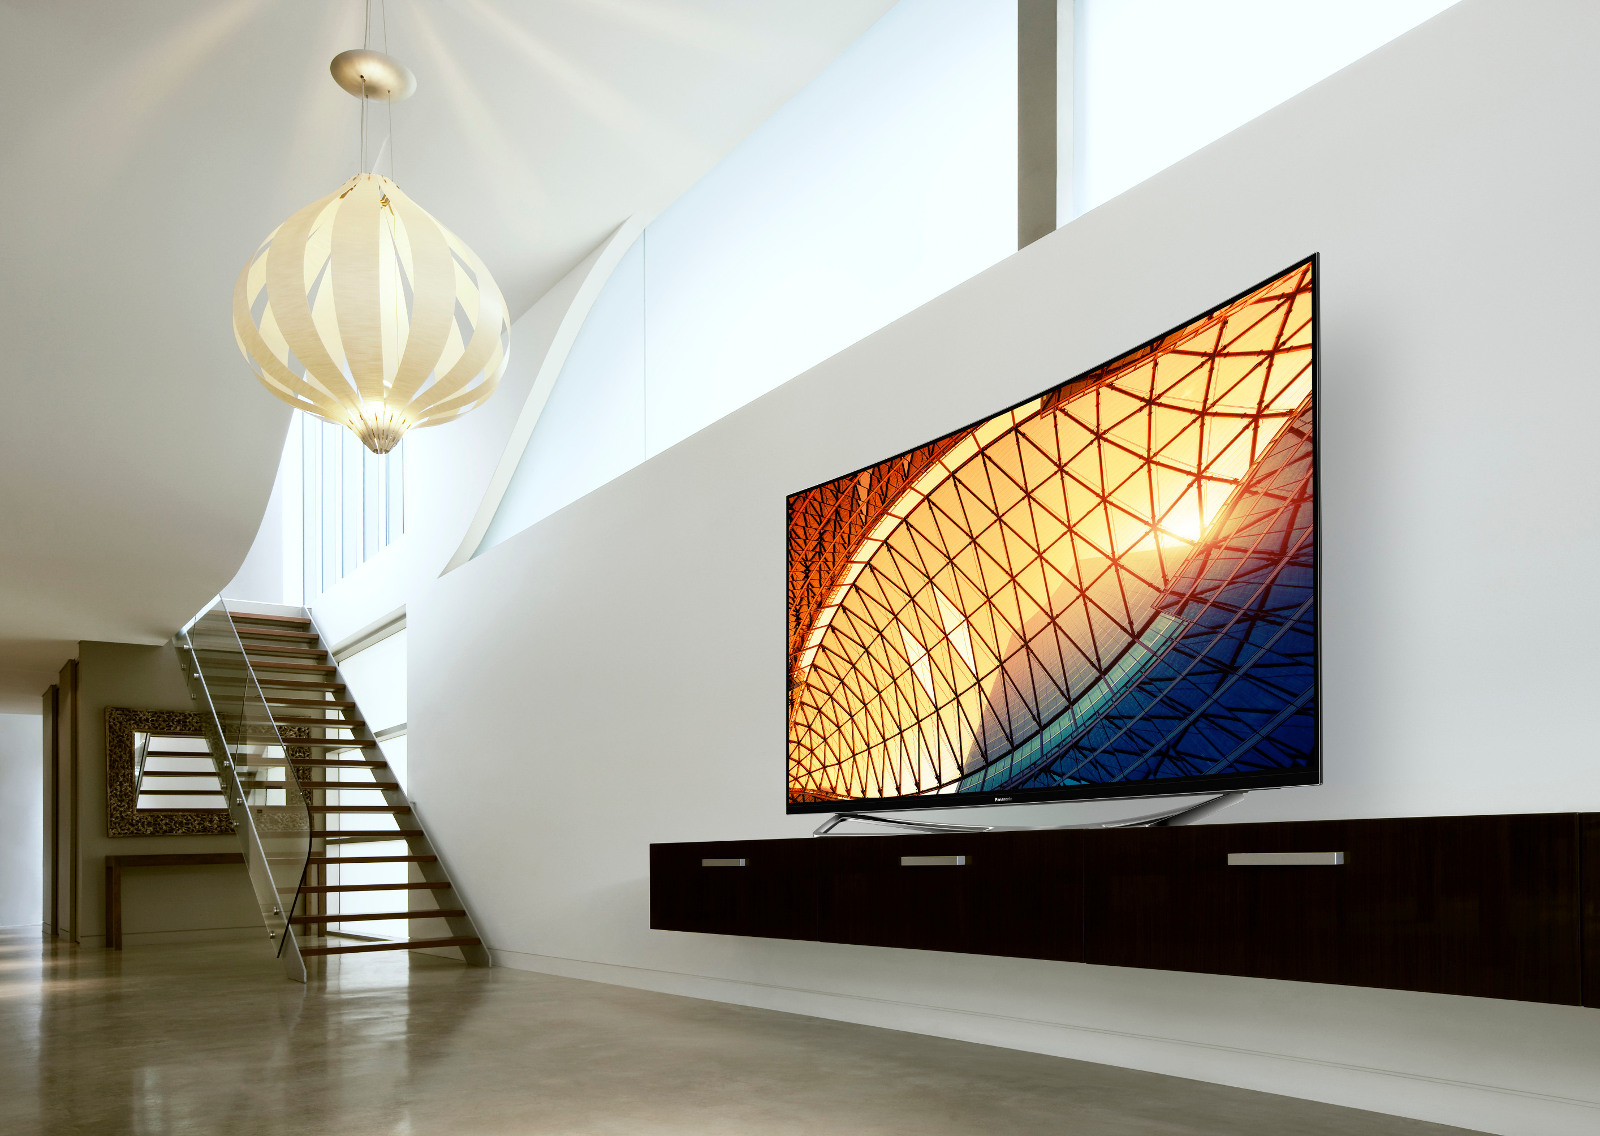 lc oder oled display techniken bei fernsehern im vergleich. Black Bedroom Furniture Sets. Home Design Ideas